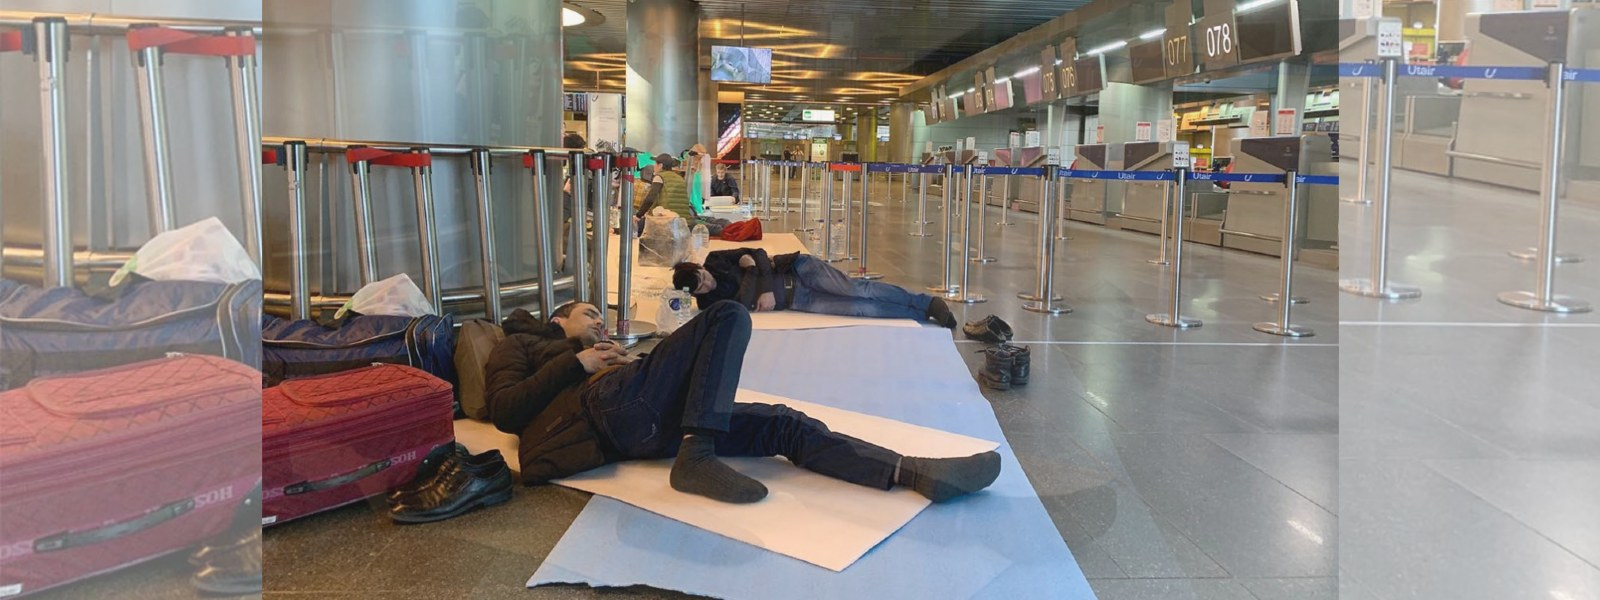 Two Sri Lankans en-route to South Korea stranded at the Narita Interantional Airport in Japan